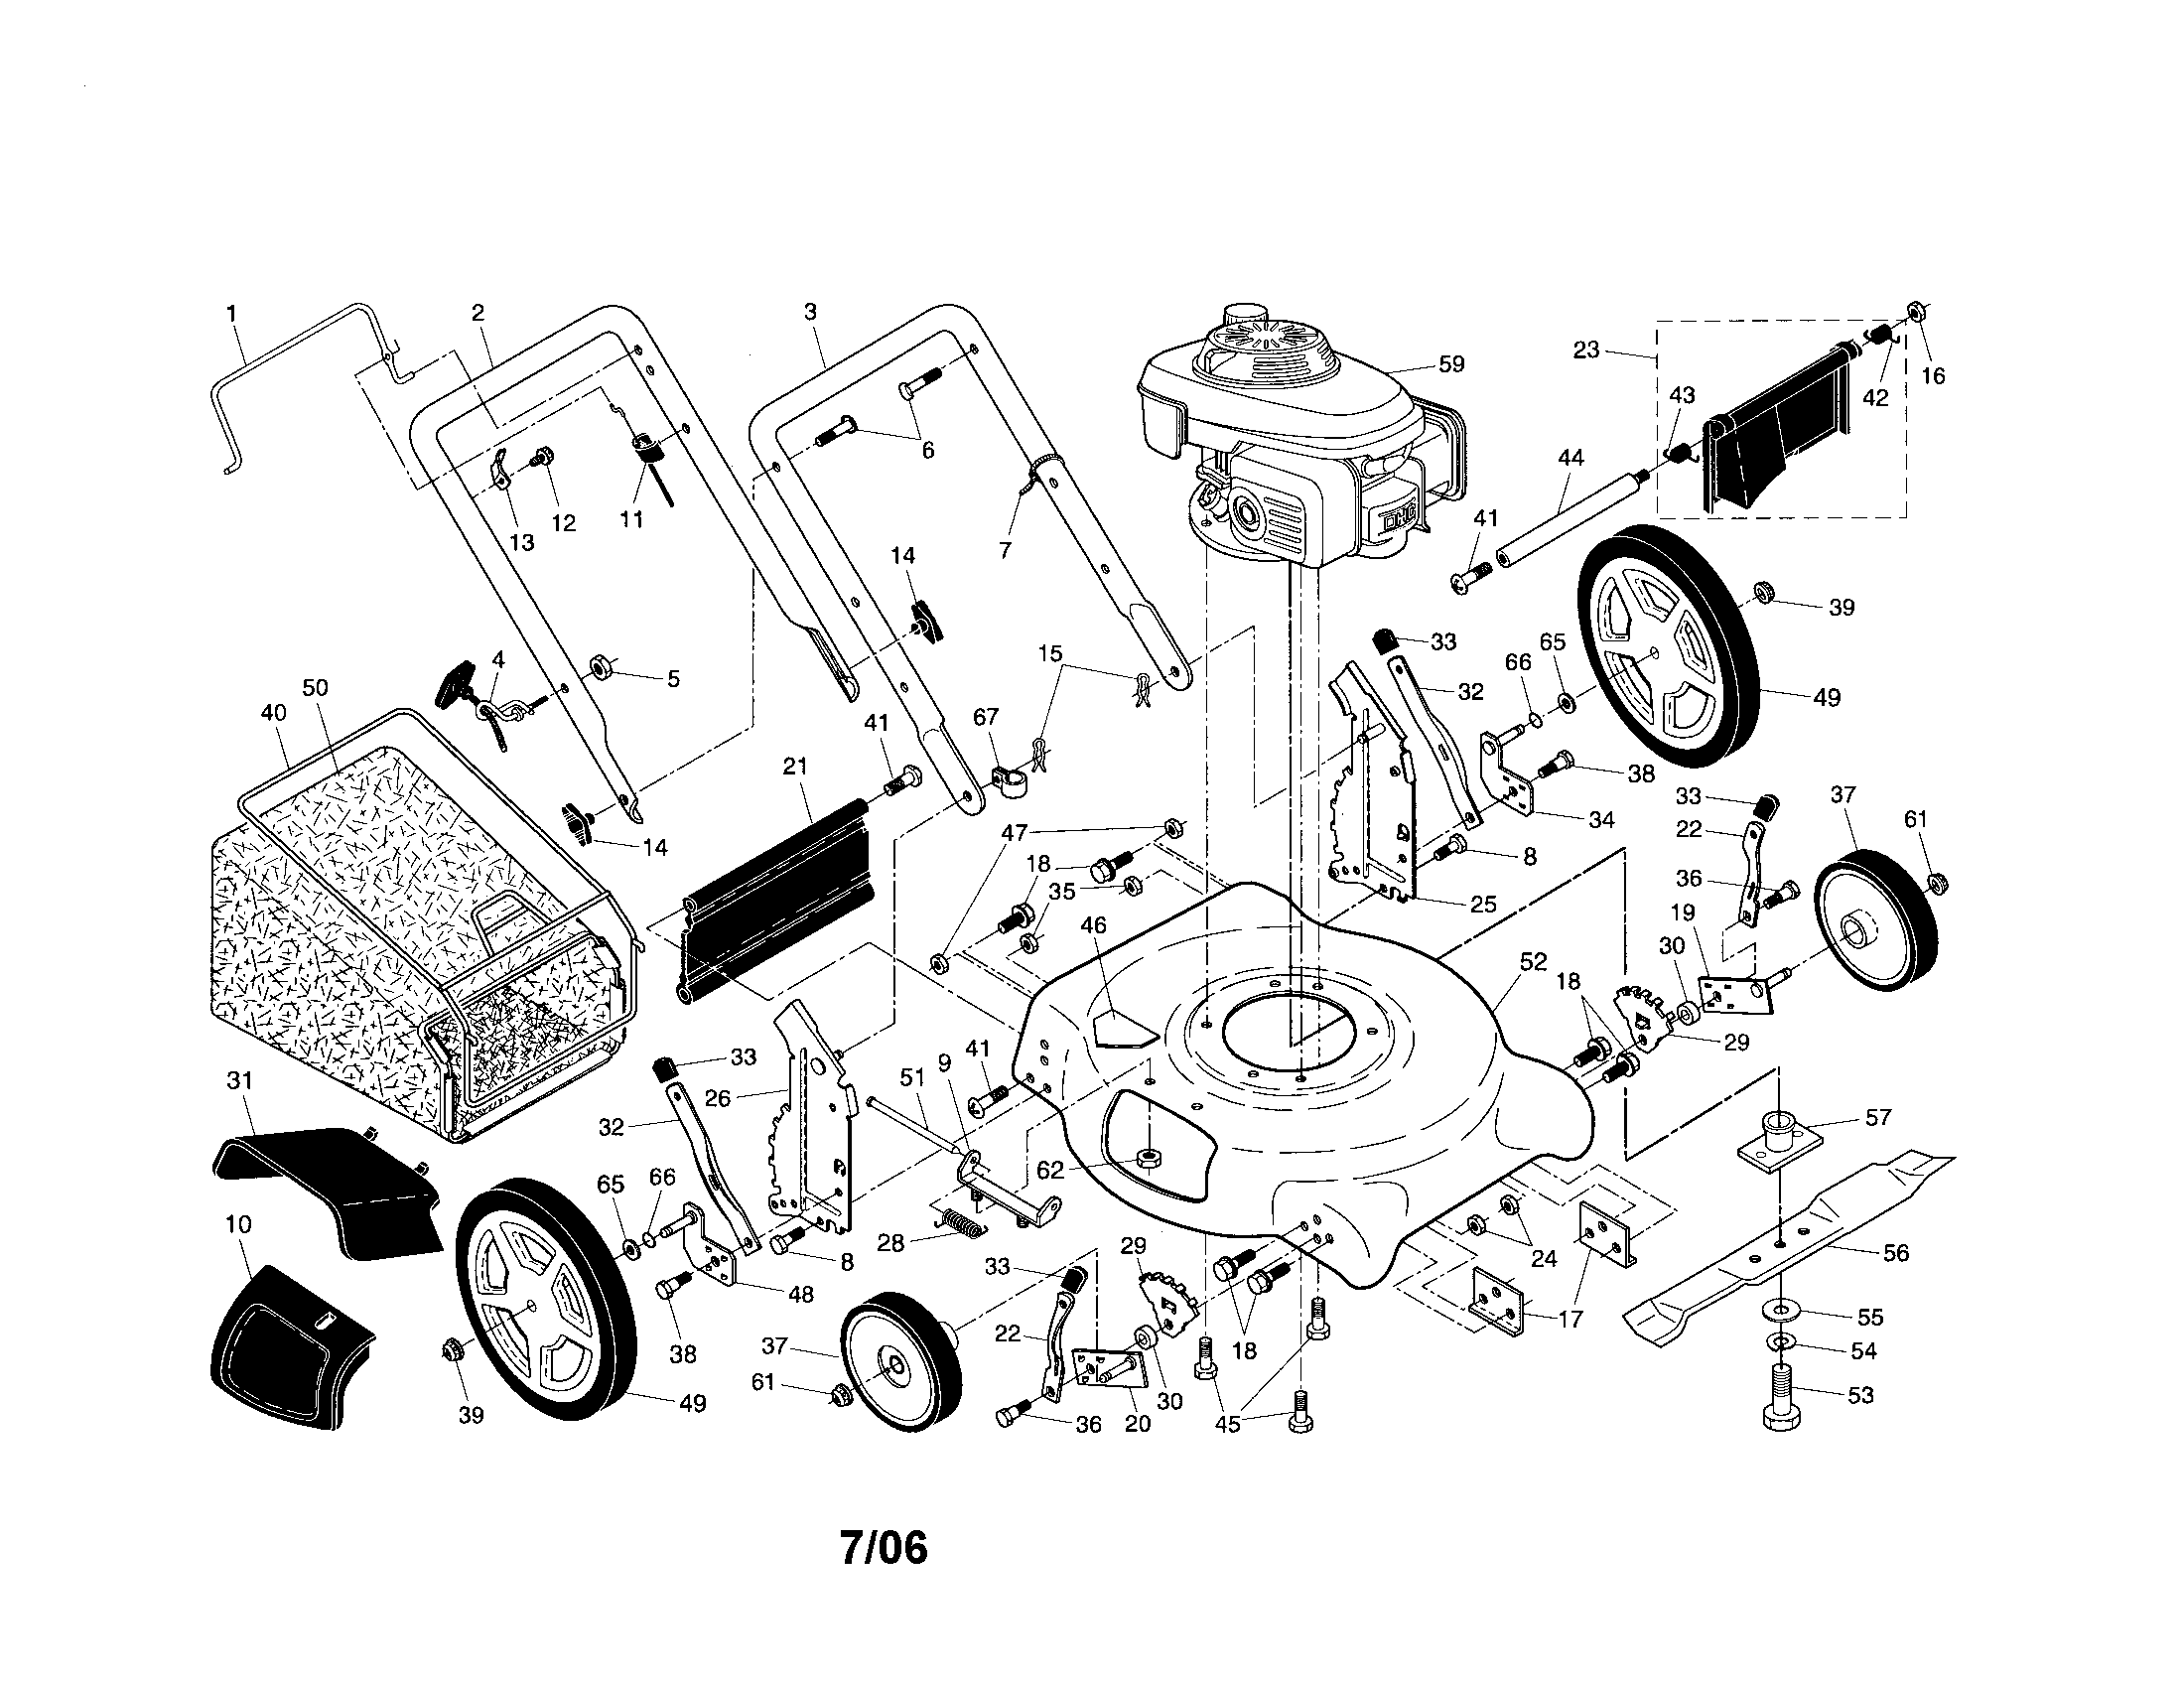 Honda Hrr216vka Parts Diagram